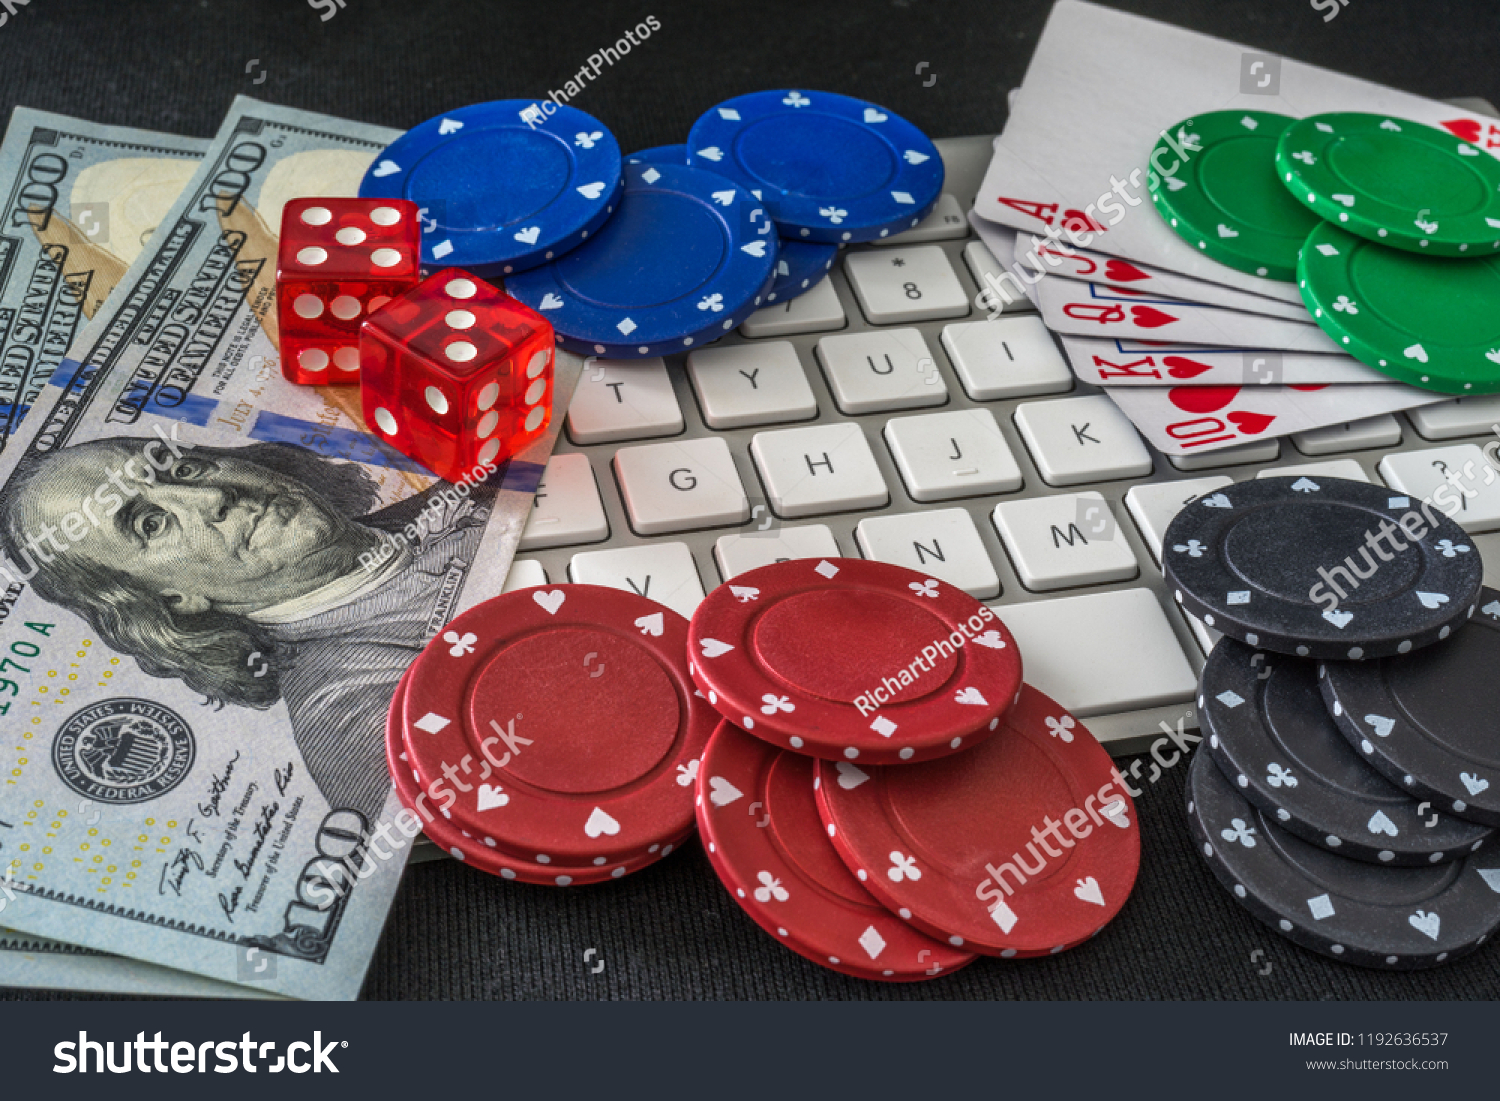 Computer Keyboard Surrounded By Casino Items Stock Photo Edit Now 1192636537